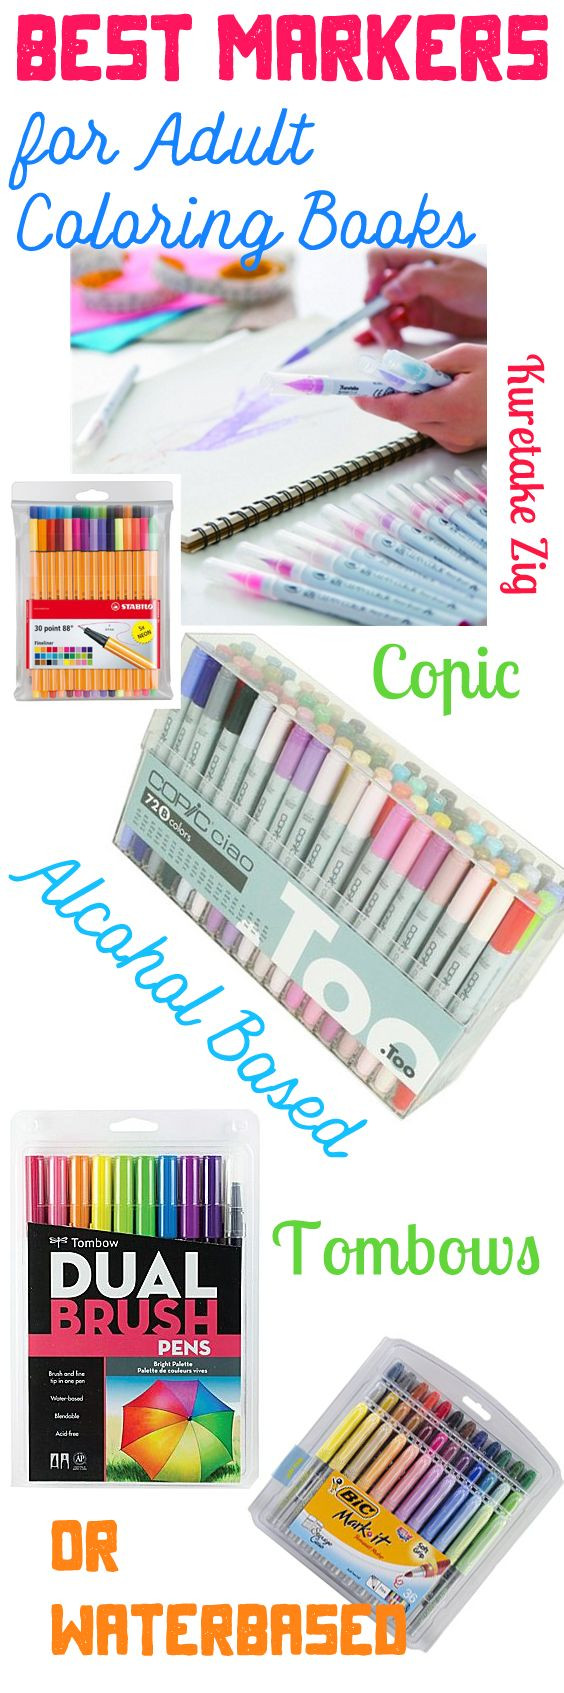 Best ideas about Markers For Adult Coloring Books . Save or Pin Best Markers for Adult Coloring Books Alcohol Based Now.